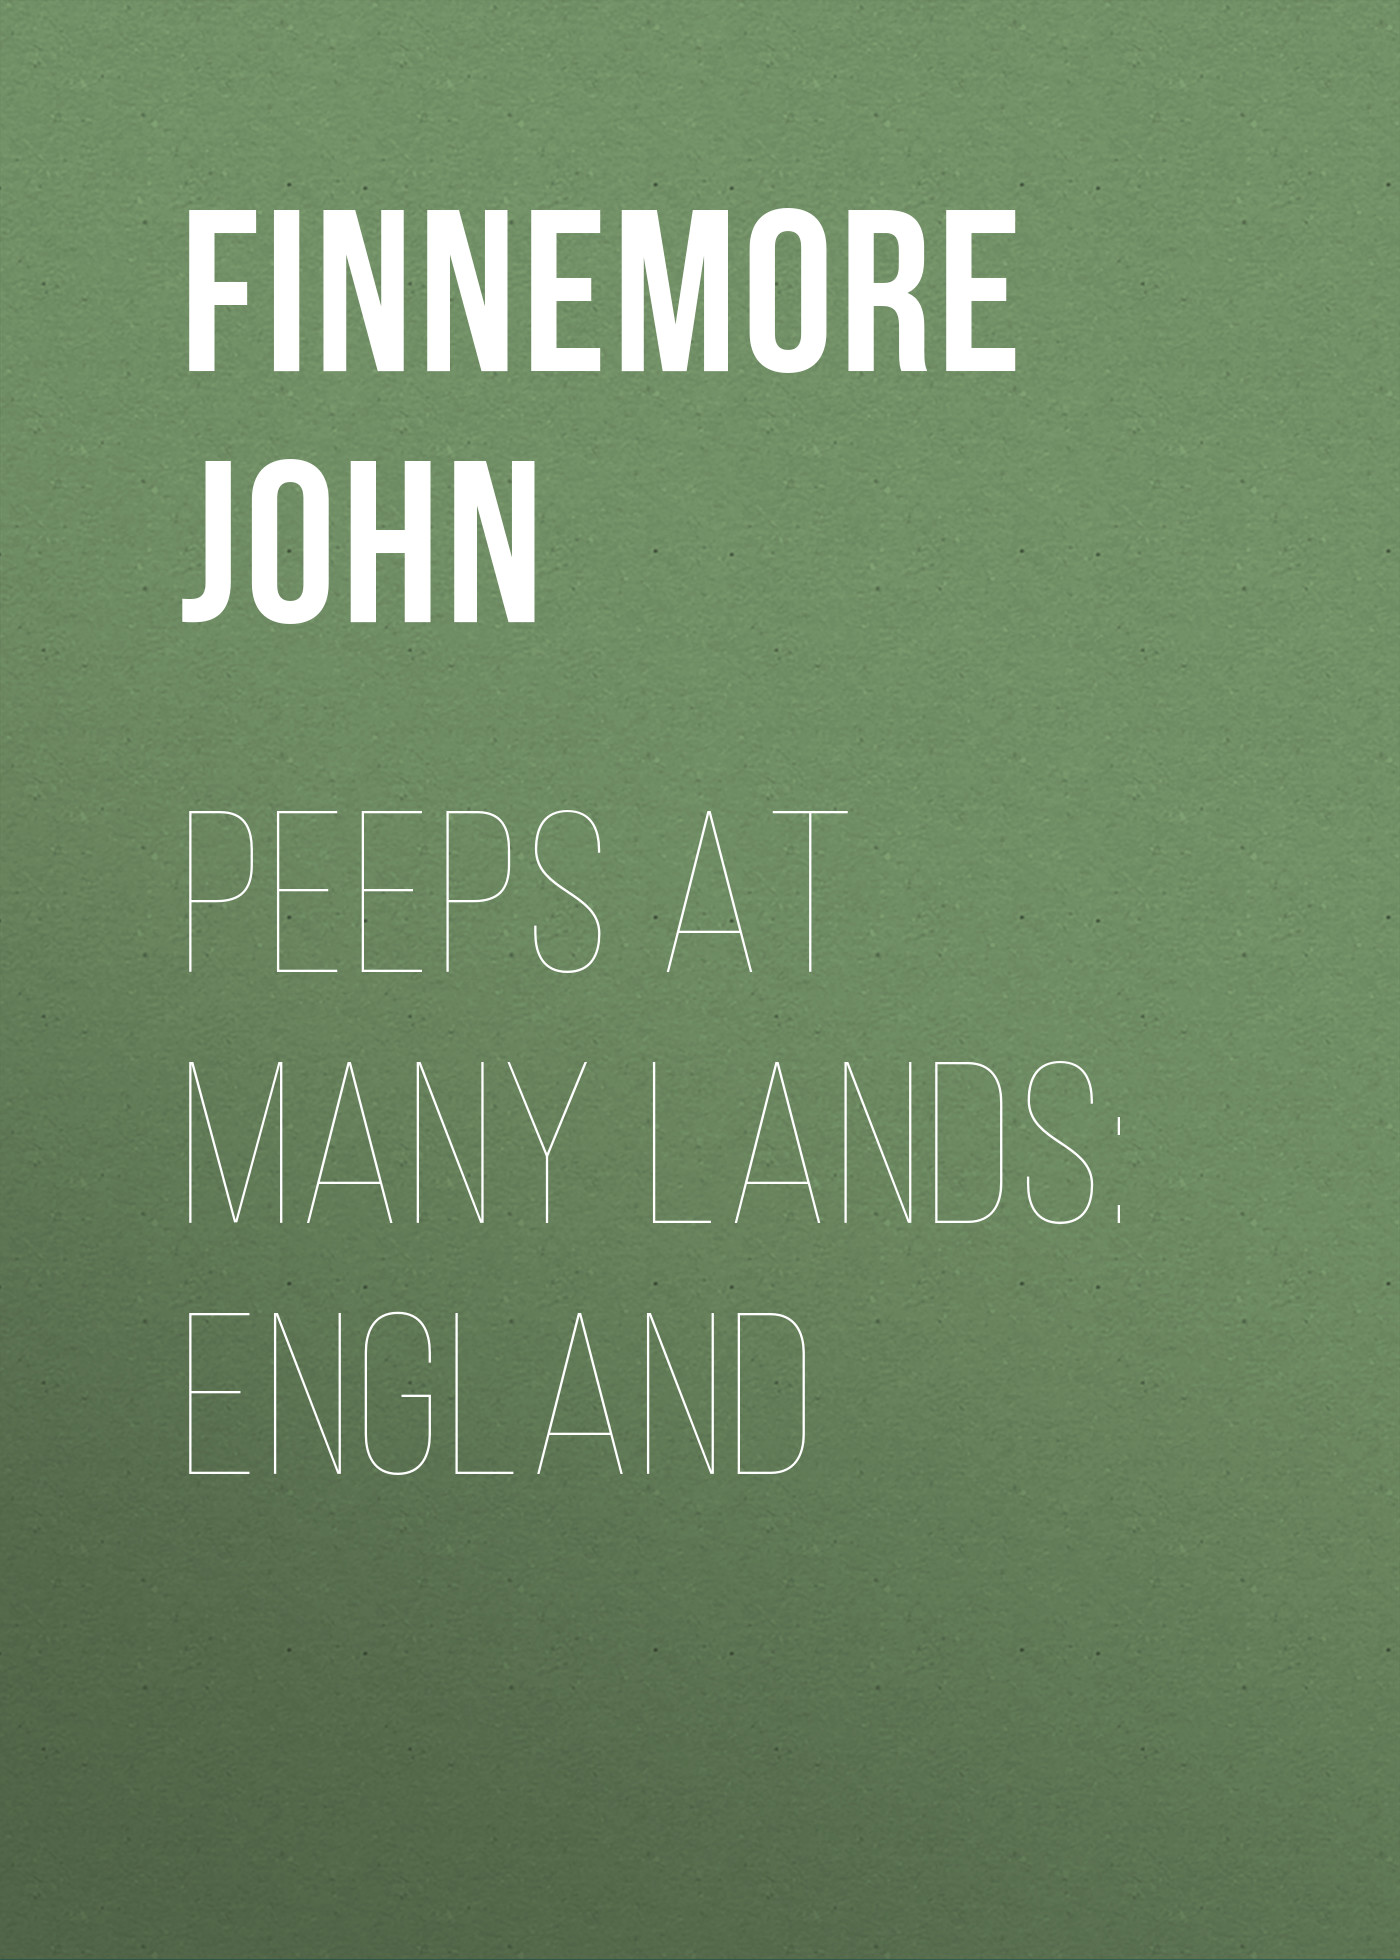 цена Finnemore John Peeps at Many Lands: England онлайн в 2017 году